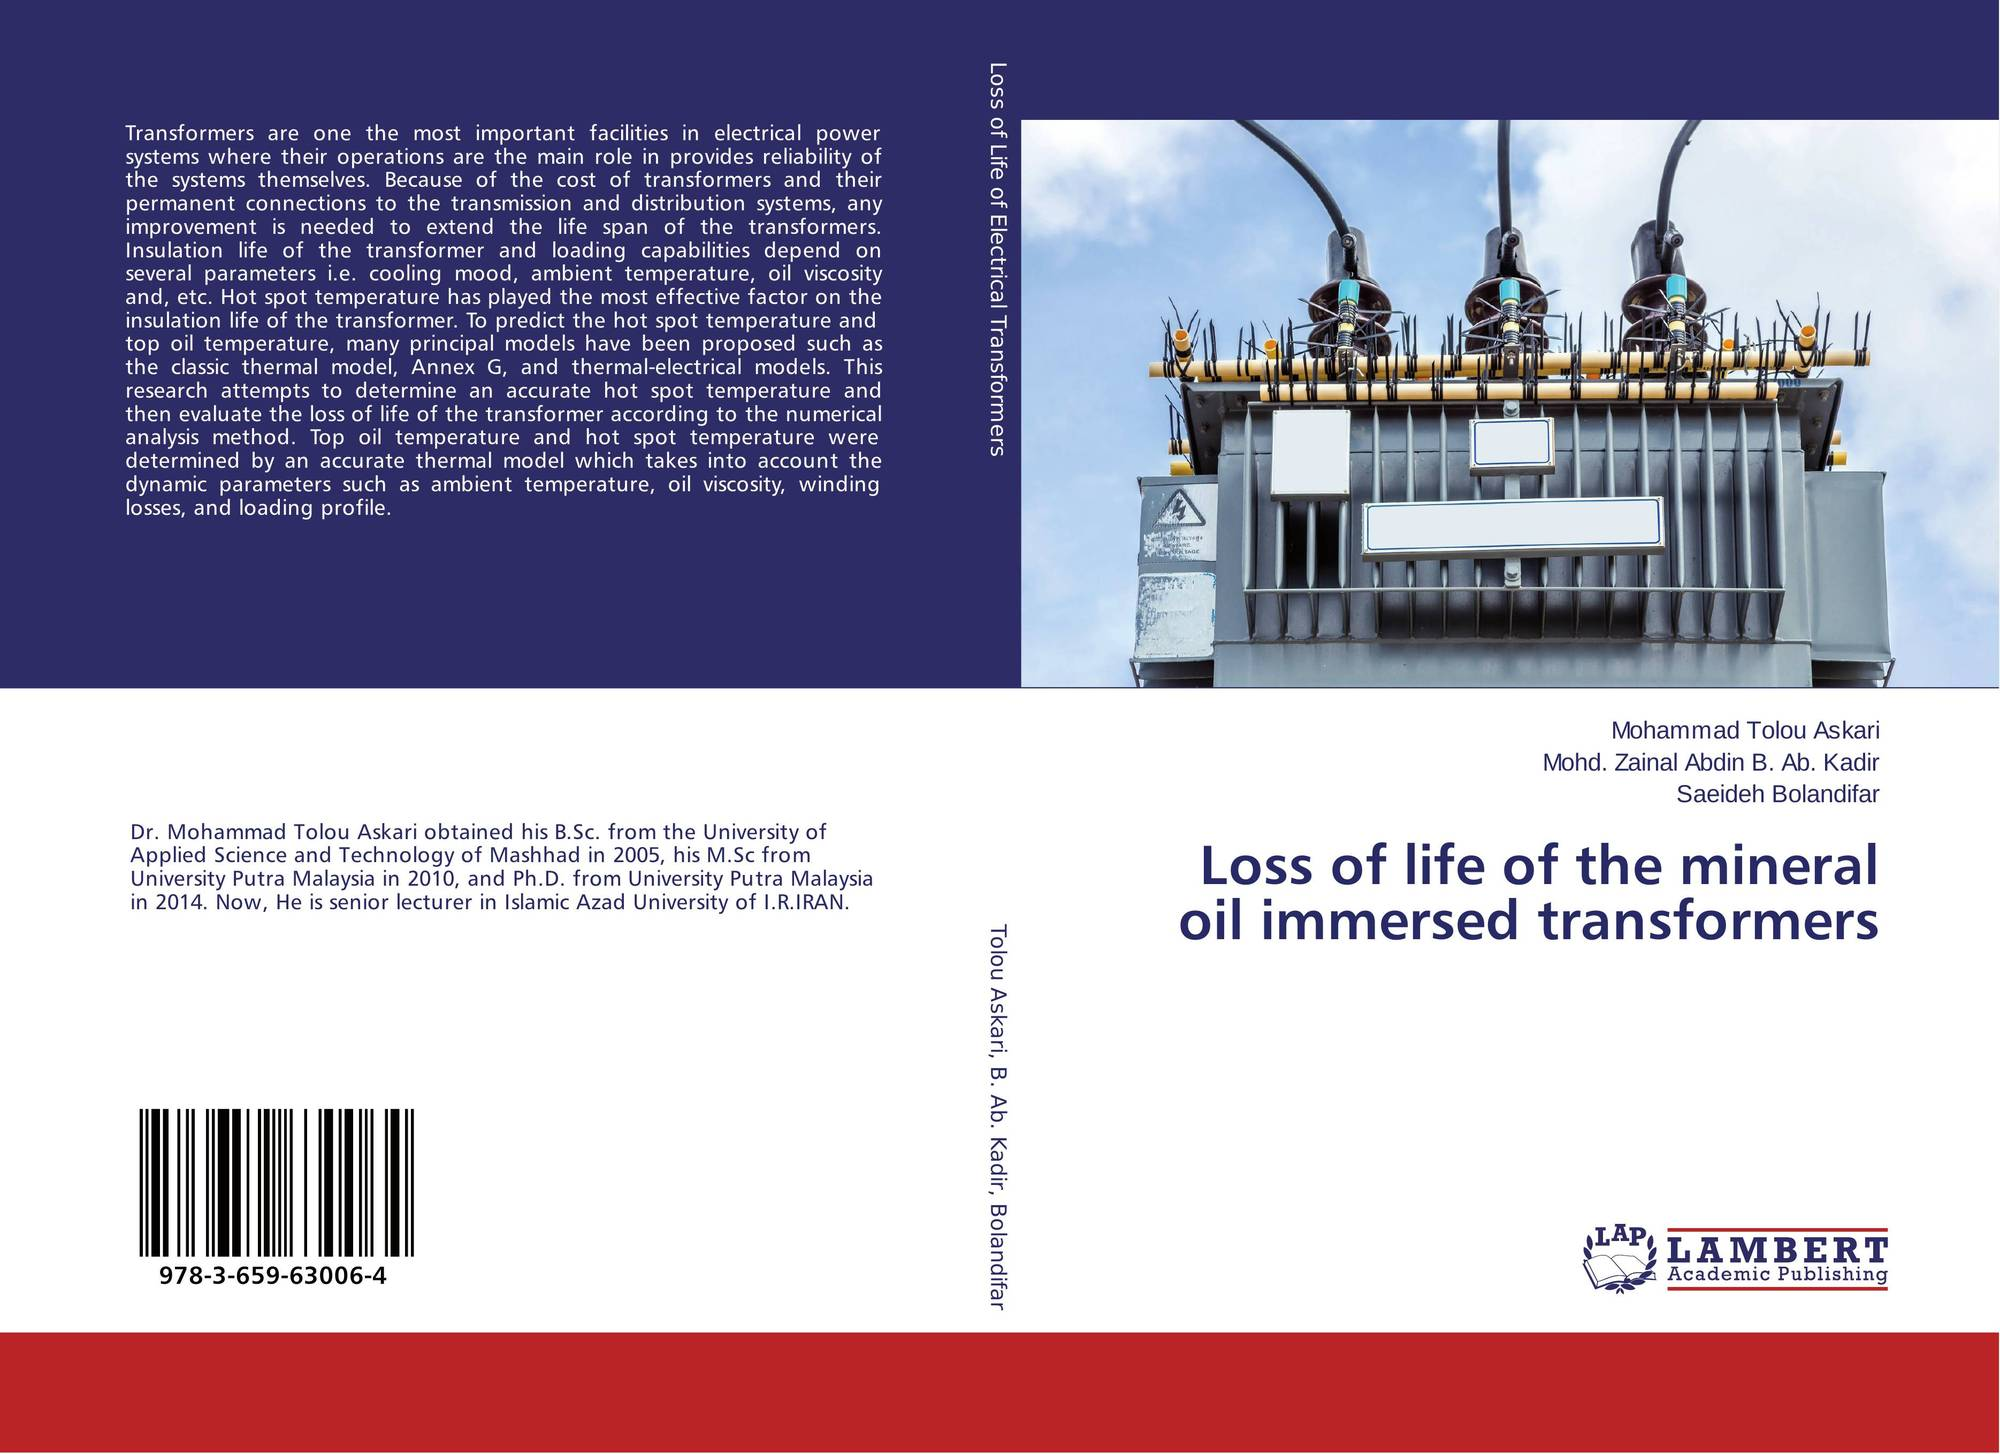 Loss of life of the mineral oil immersed transformers, 978-3